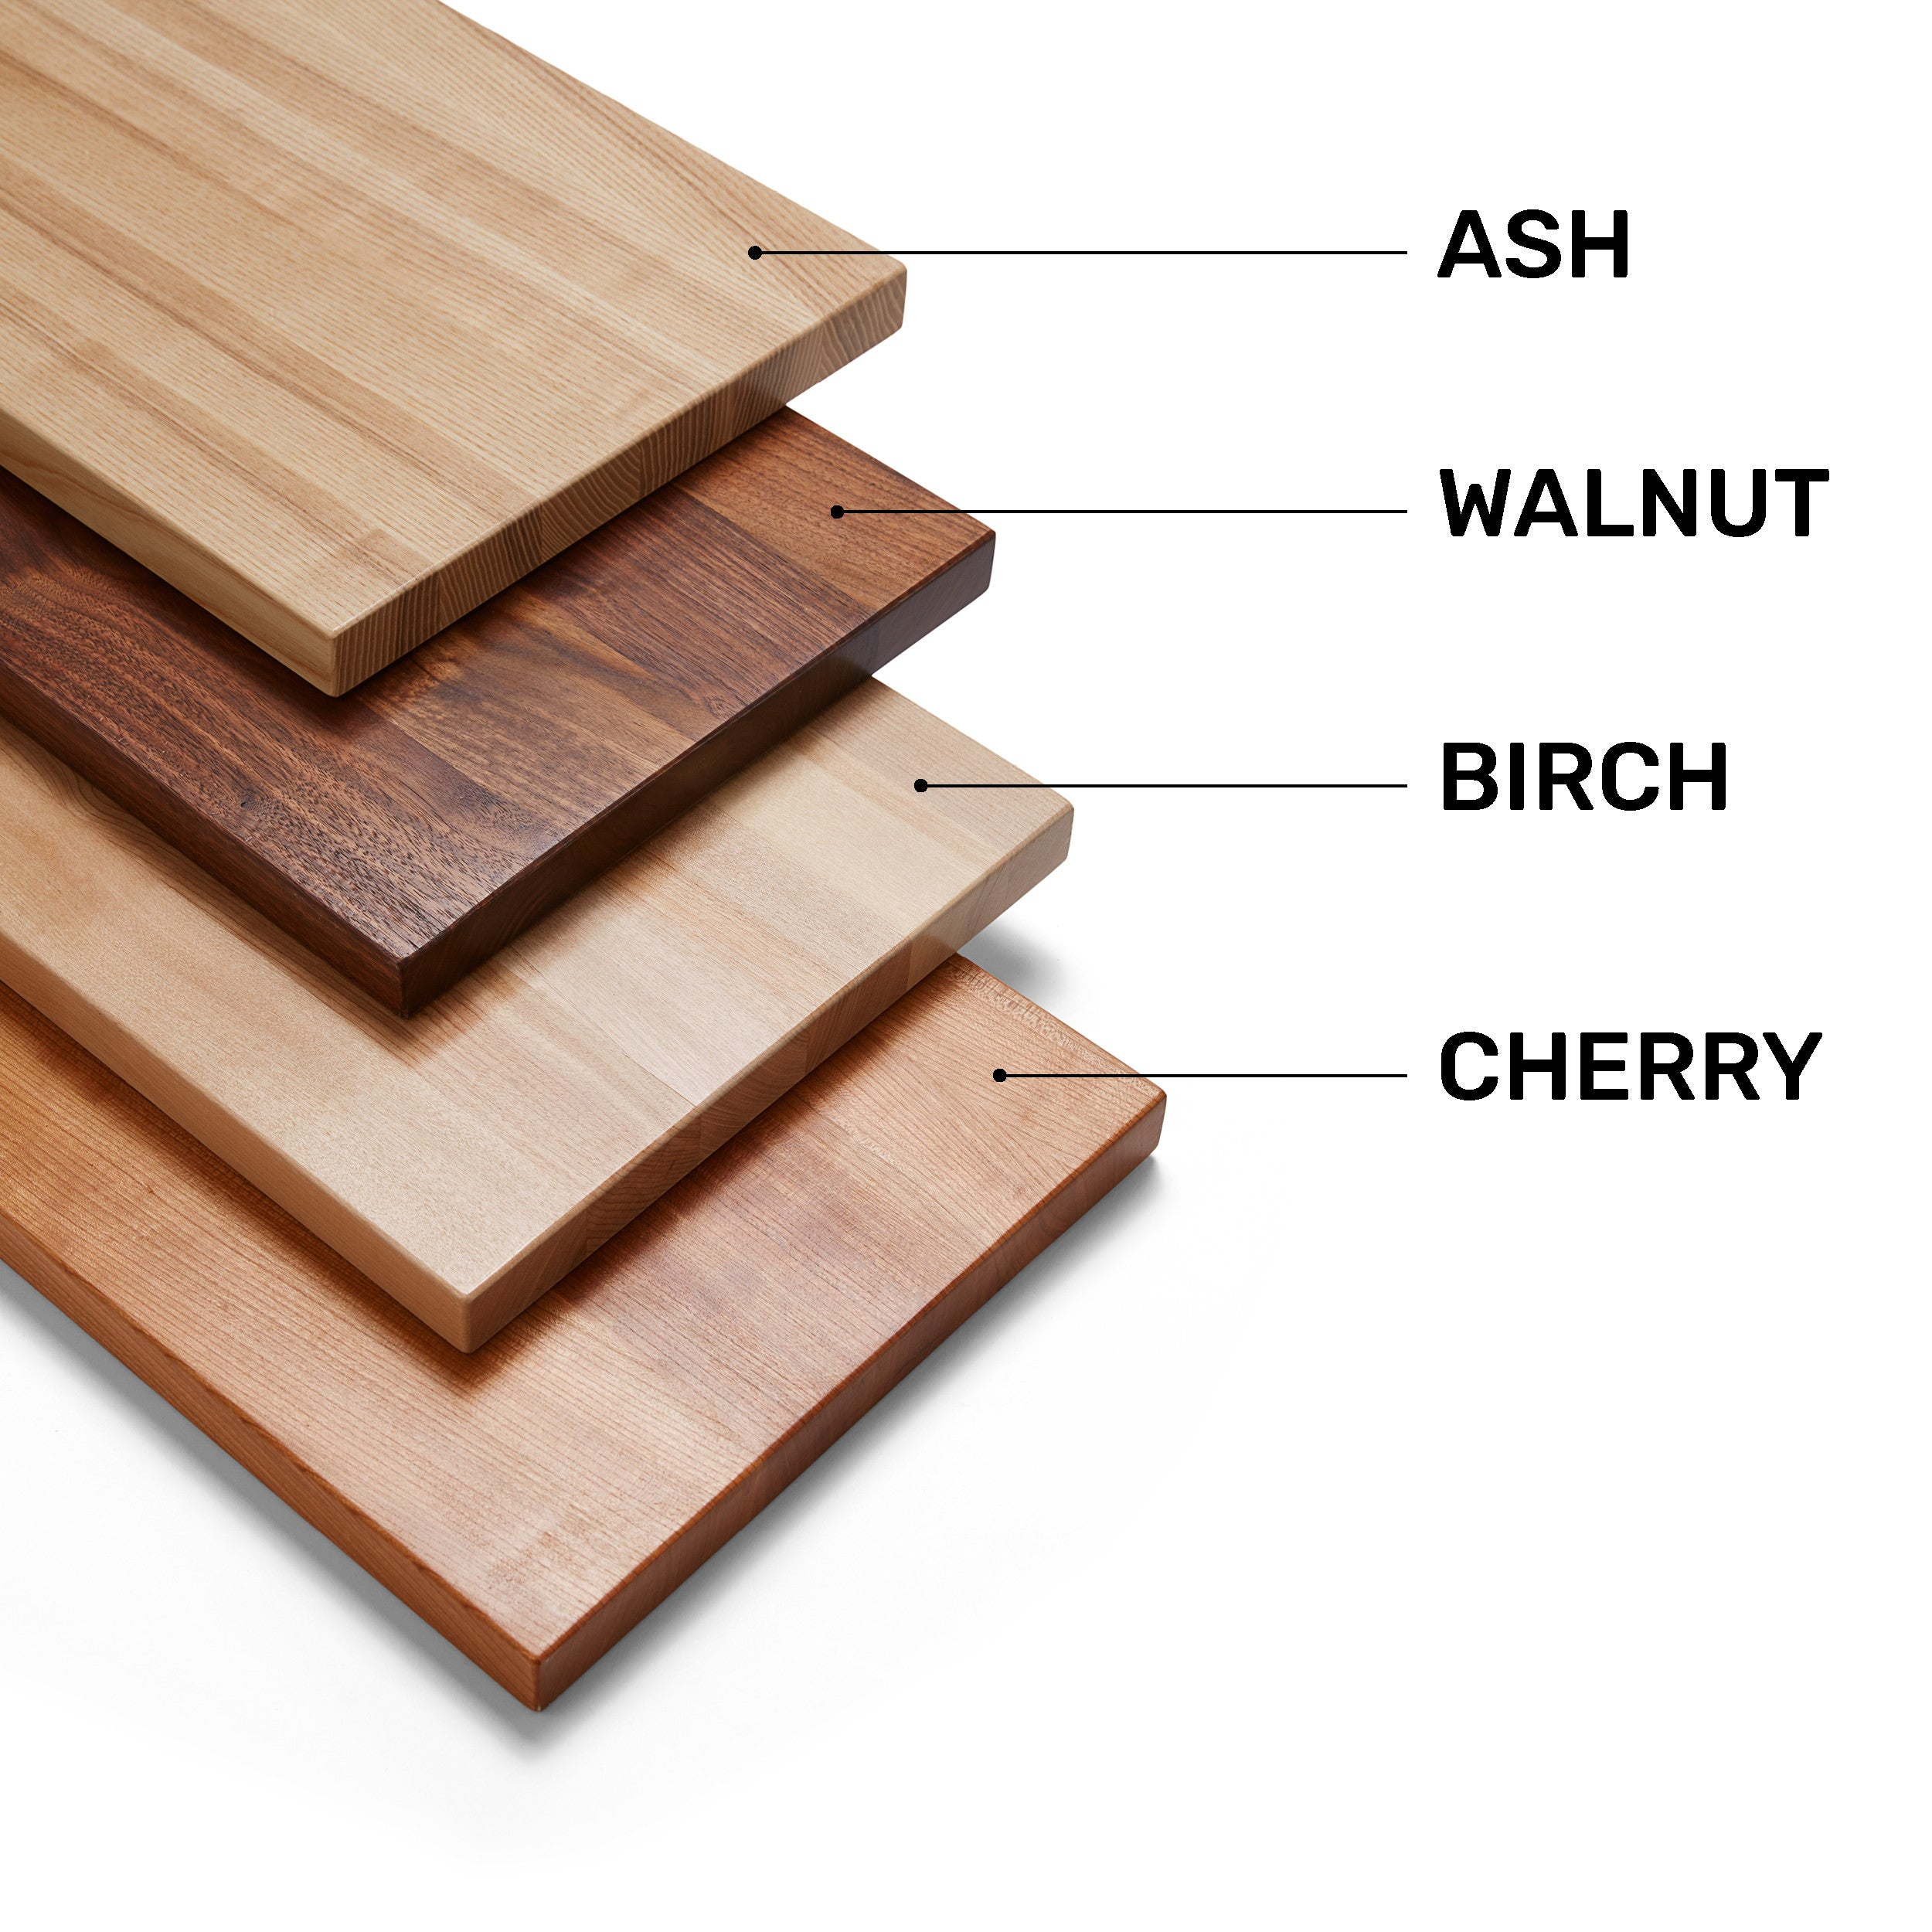 WOODS SPECIES USED FOR FURNITURE-WALNUT-BIRCH-CHERRY-ASH